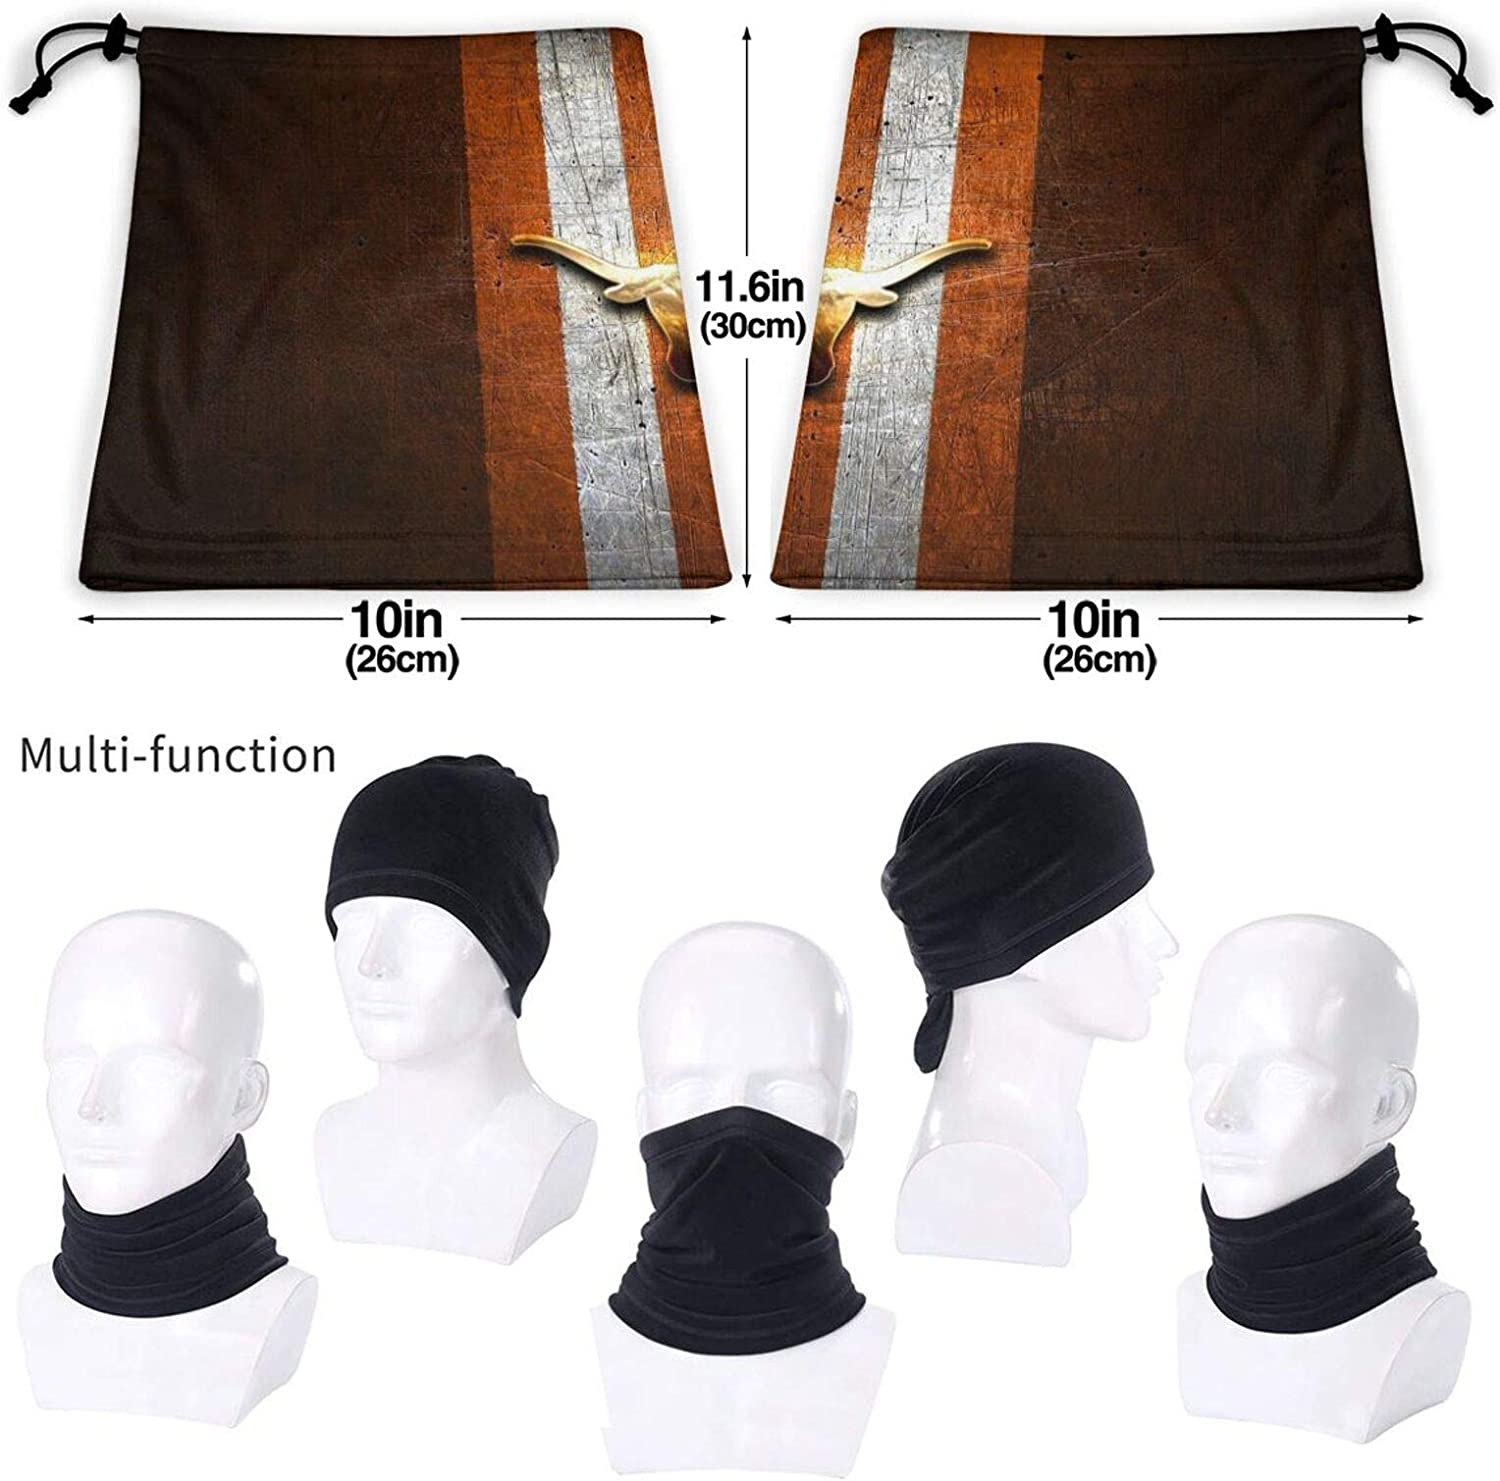 Texas-Longhorns-Golden-Orange Multifunctional Neck Gaiter Face Cover Scarf Face Cover Balaclava Neck Warmer for Women Men Protection Cover Balaclava Scarf Shield Ideal for Camping Fishing